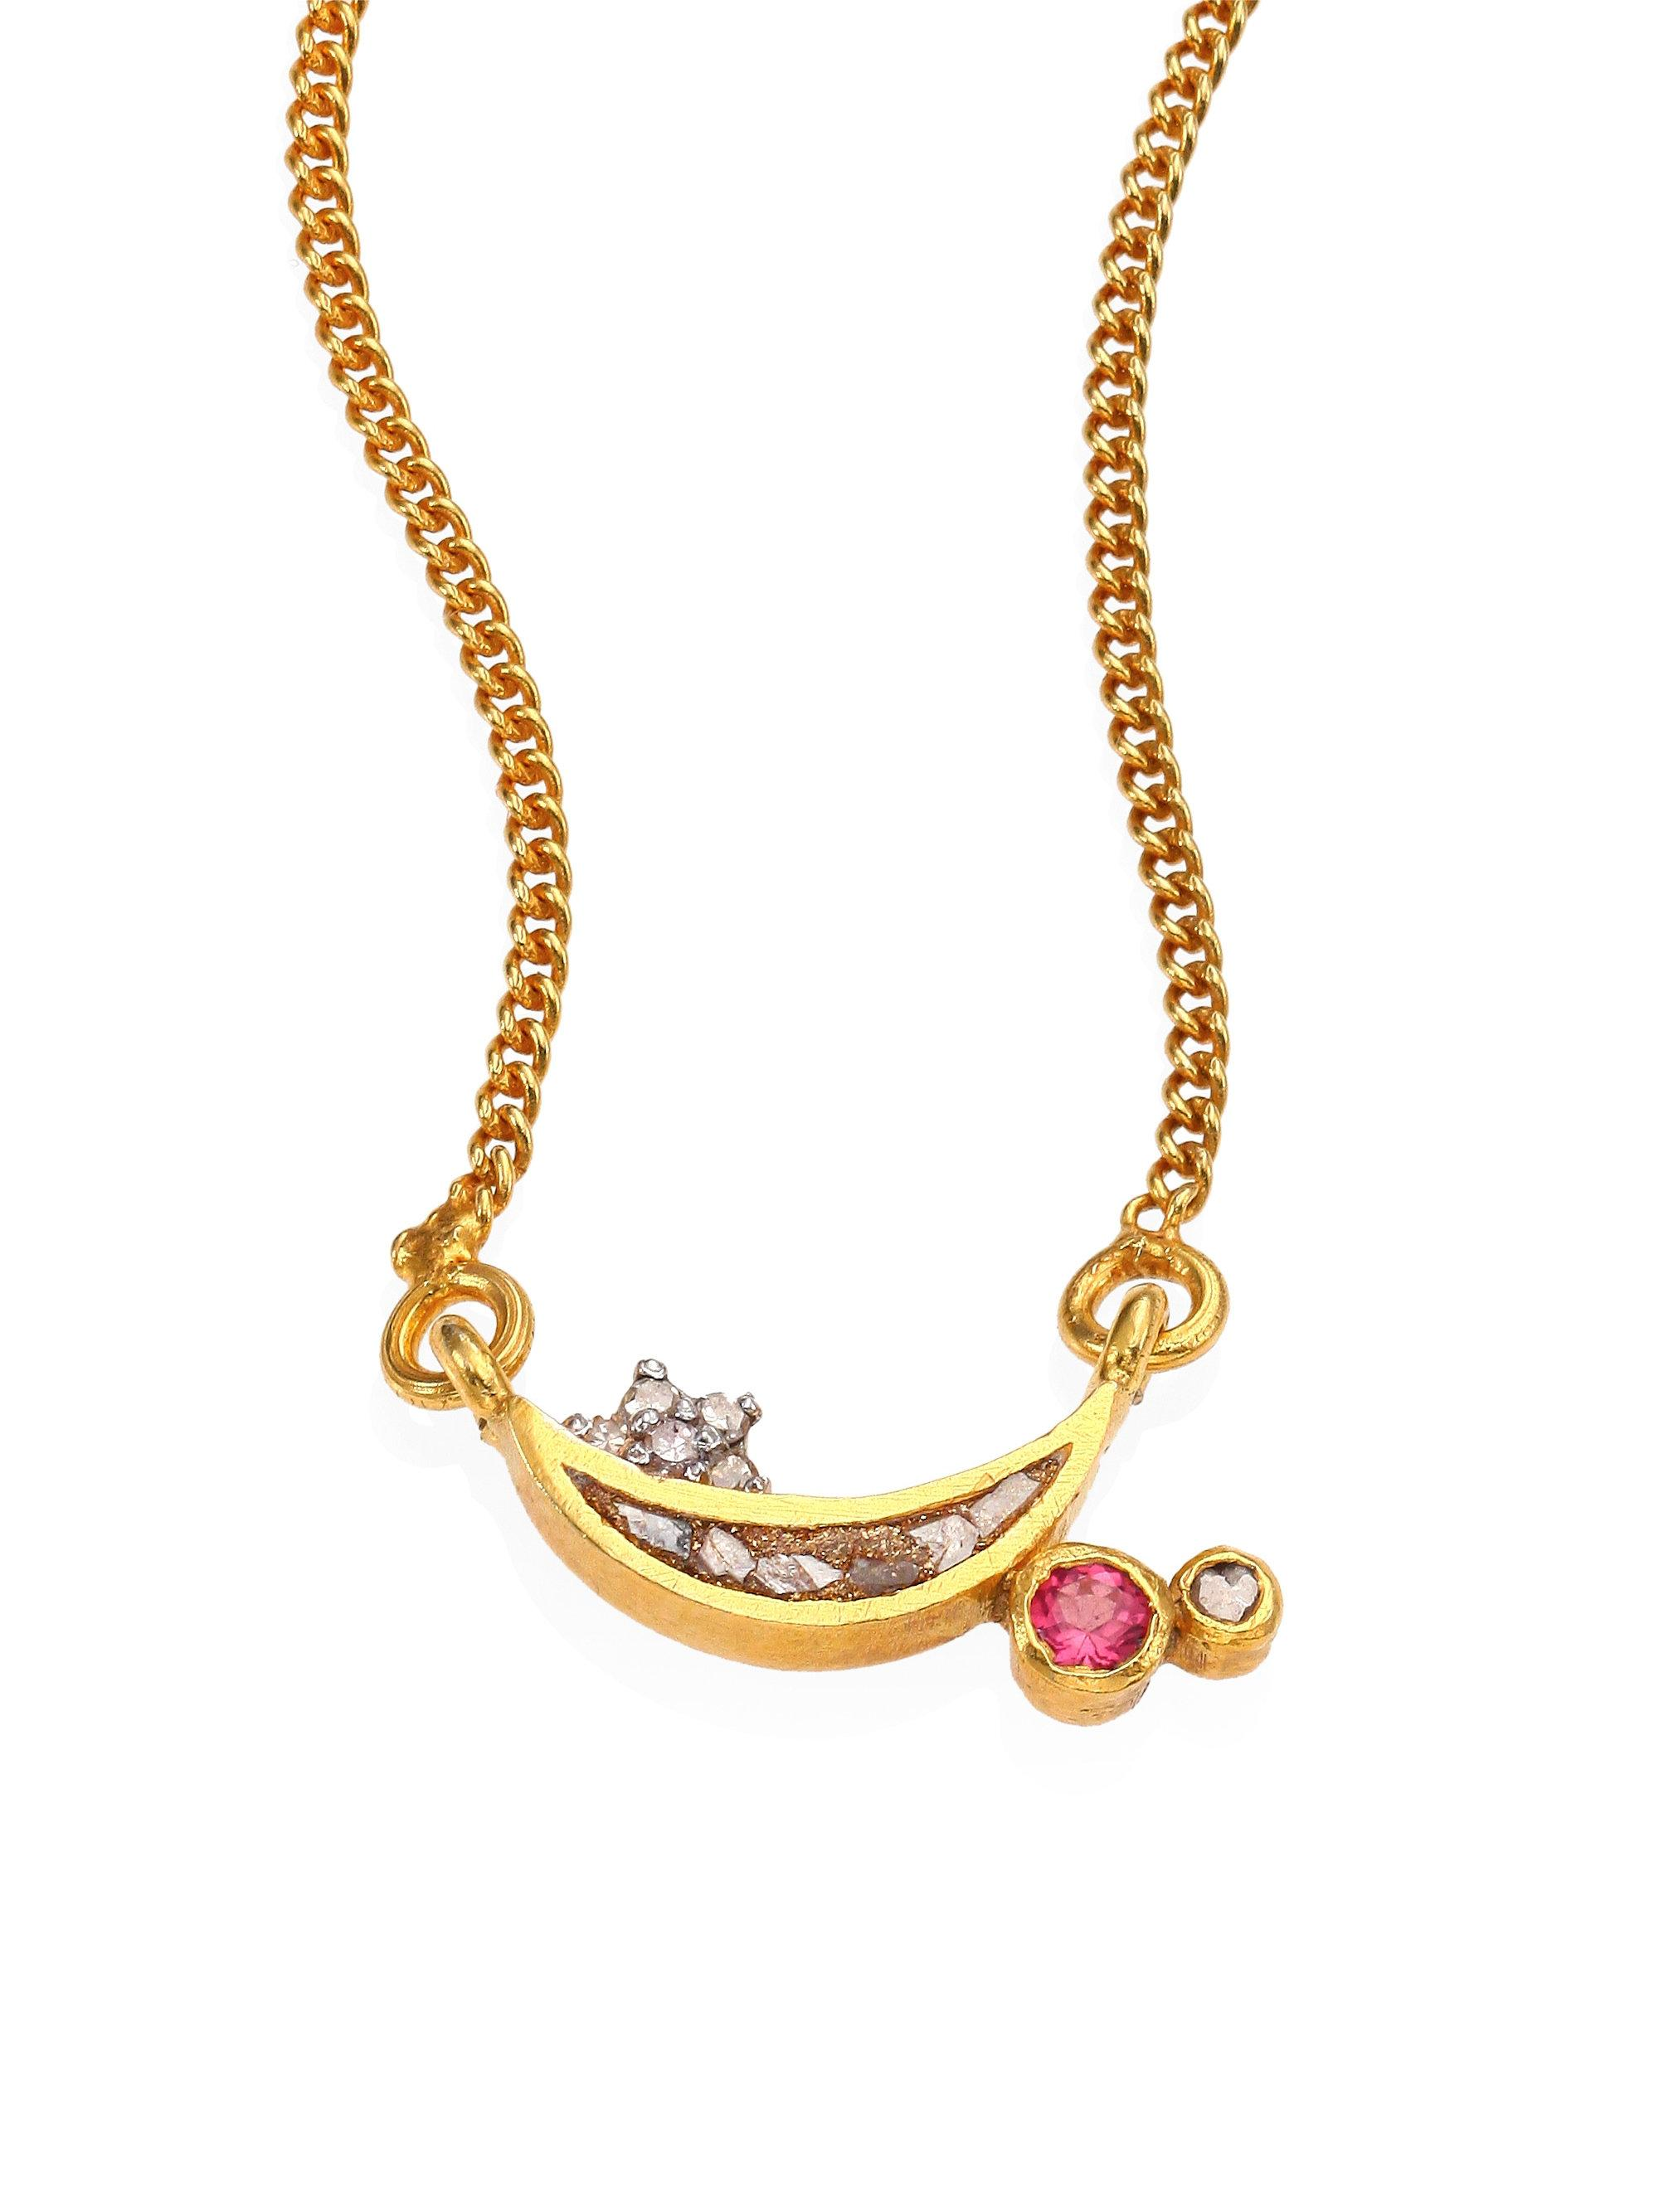 valeria design the filled wire necklace pink bar in wrapped tourmaline gemstone pendant gold